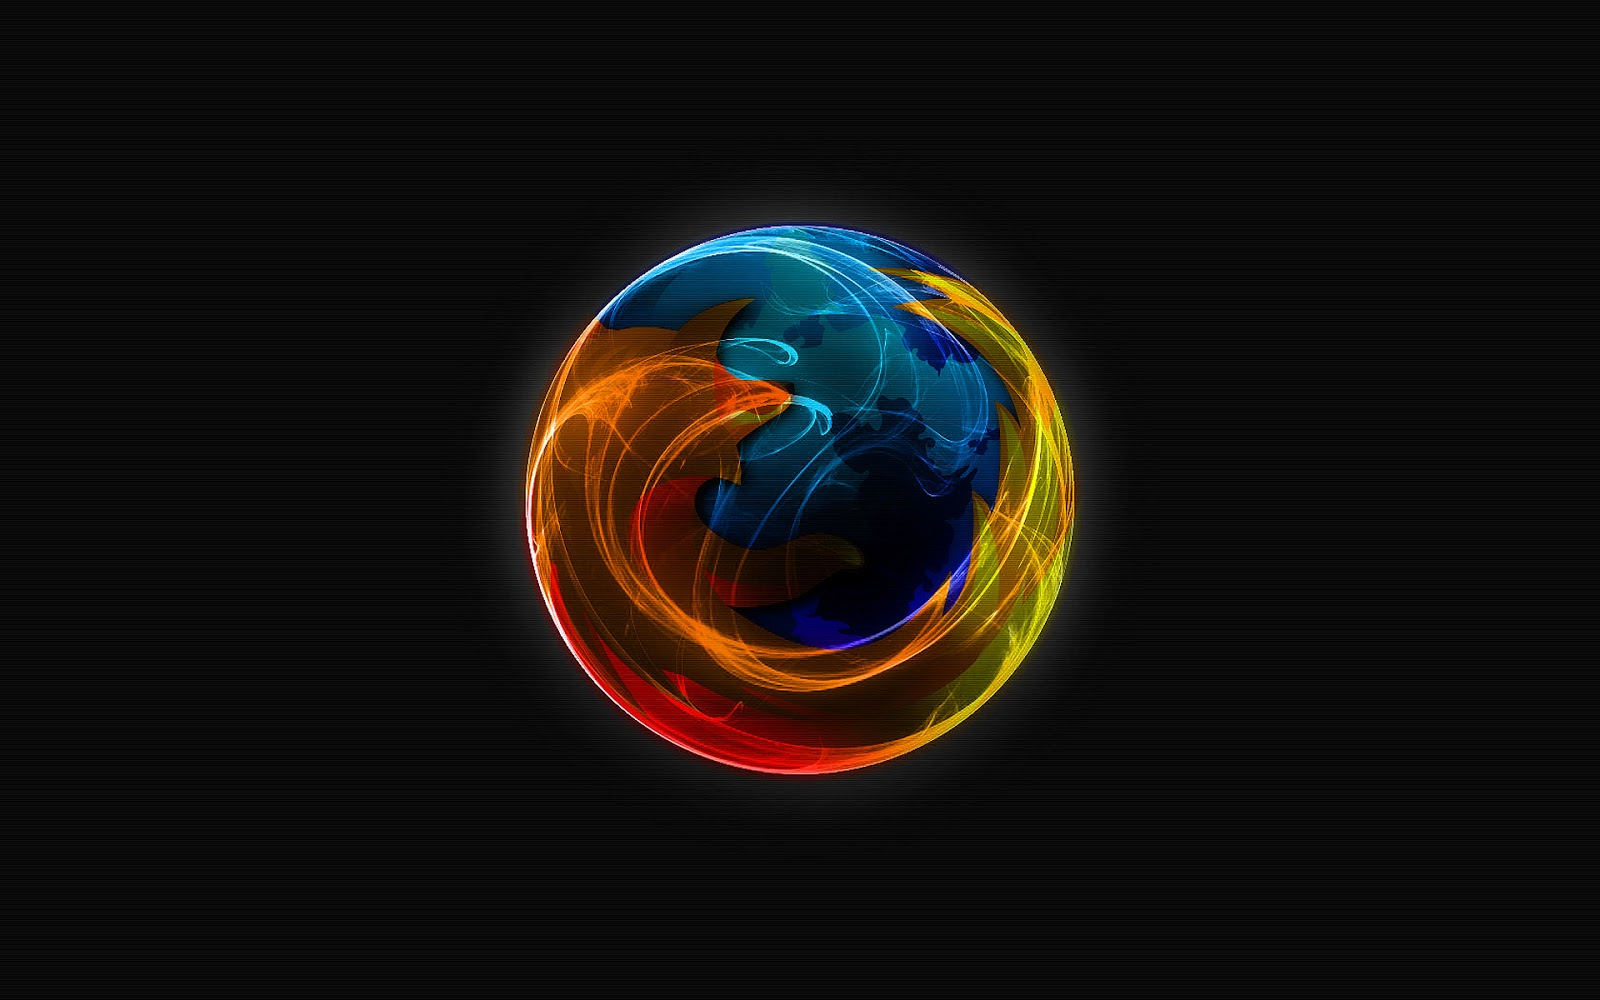 free wallpapers firefox - photo #9